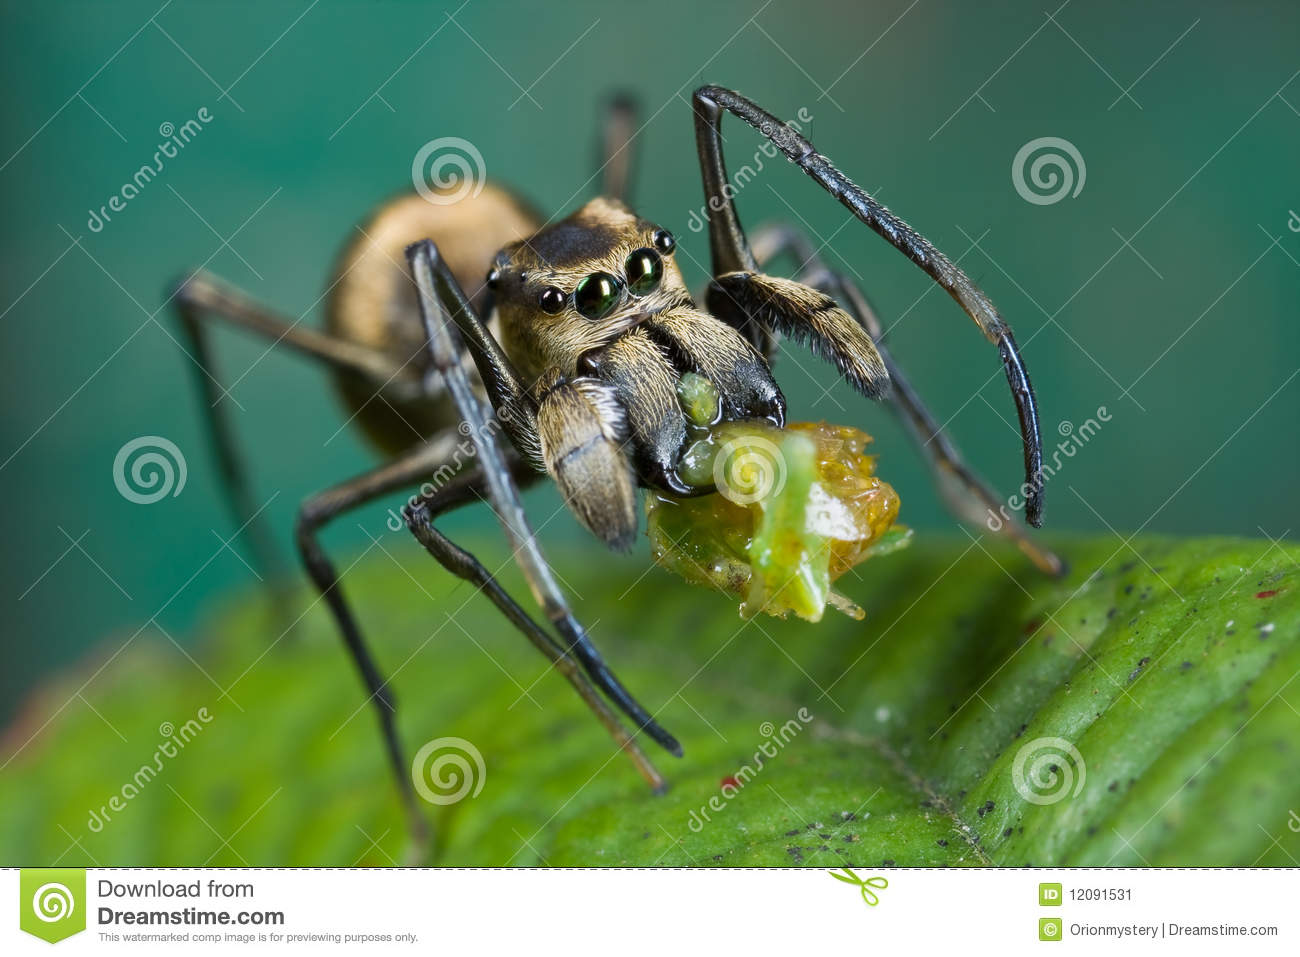 An ant-mimic Jumping spider with prey